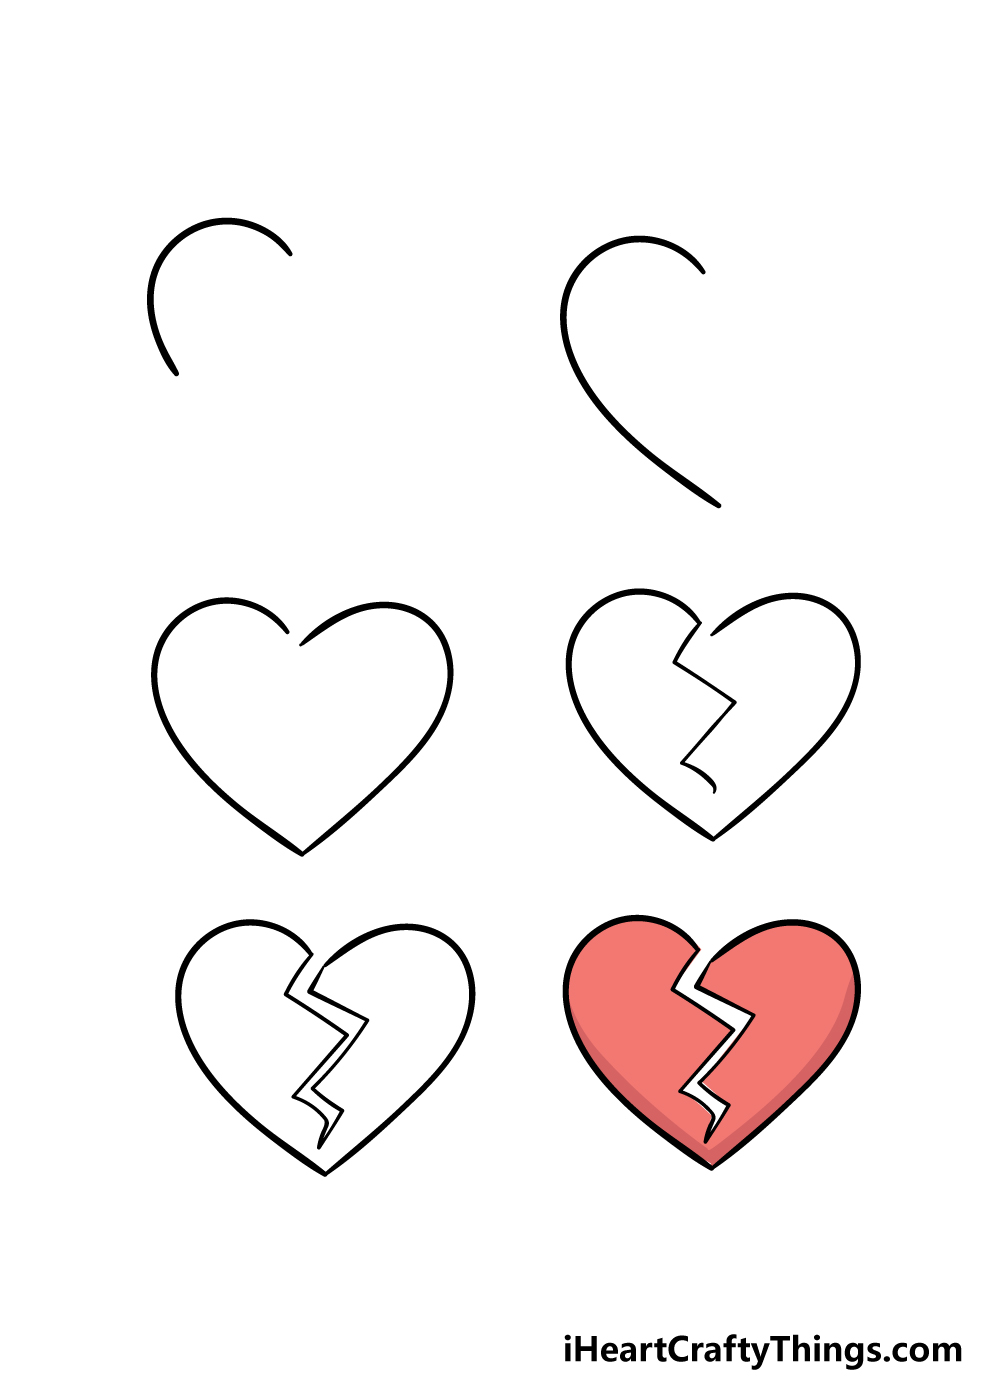 how to draw a broken heart in 6 steps